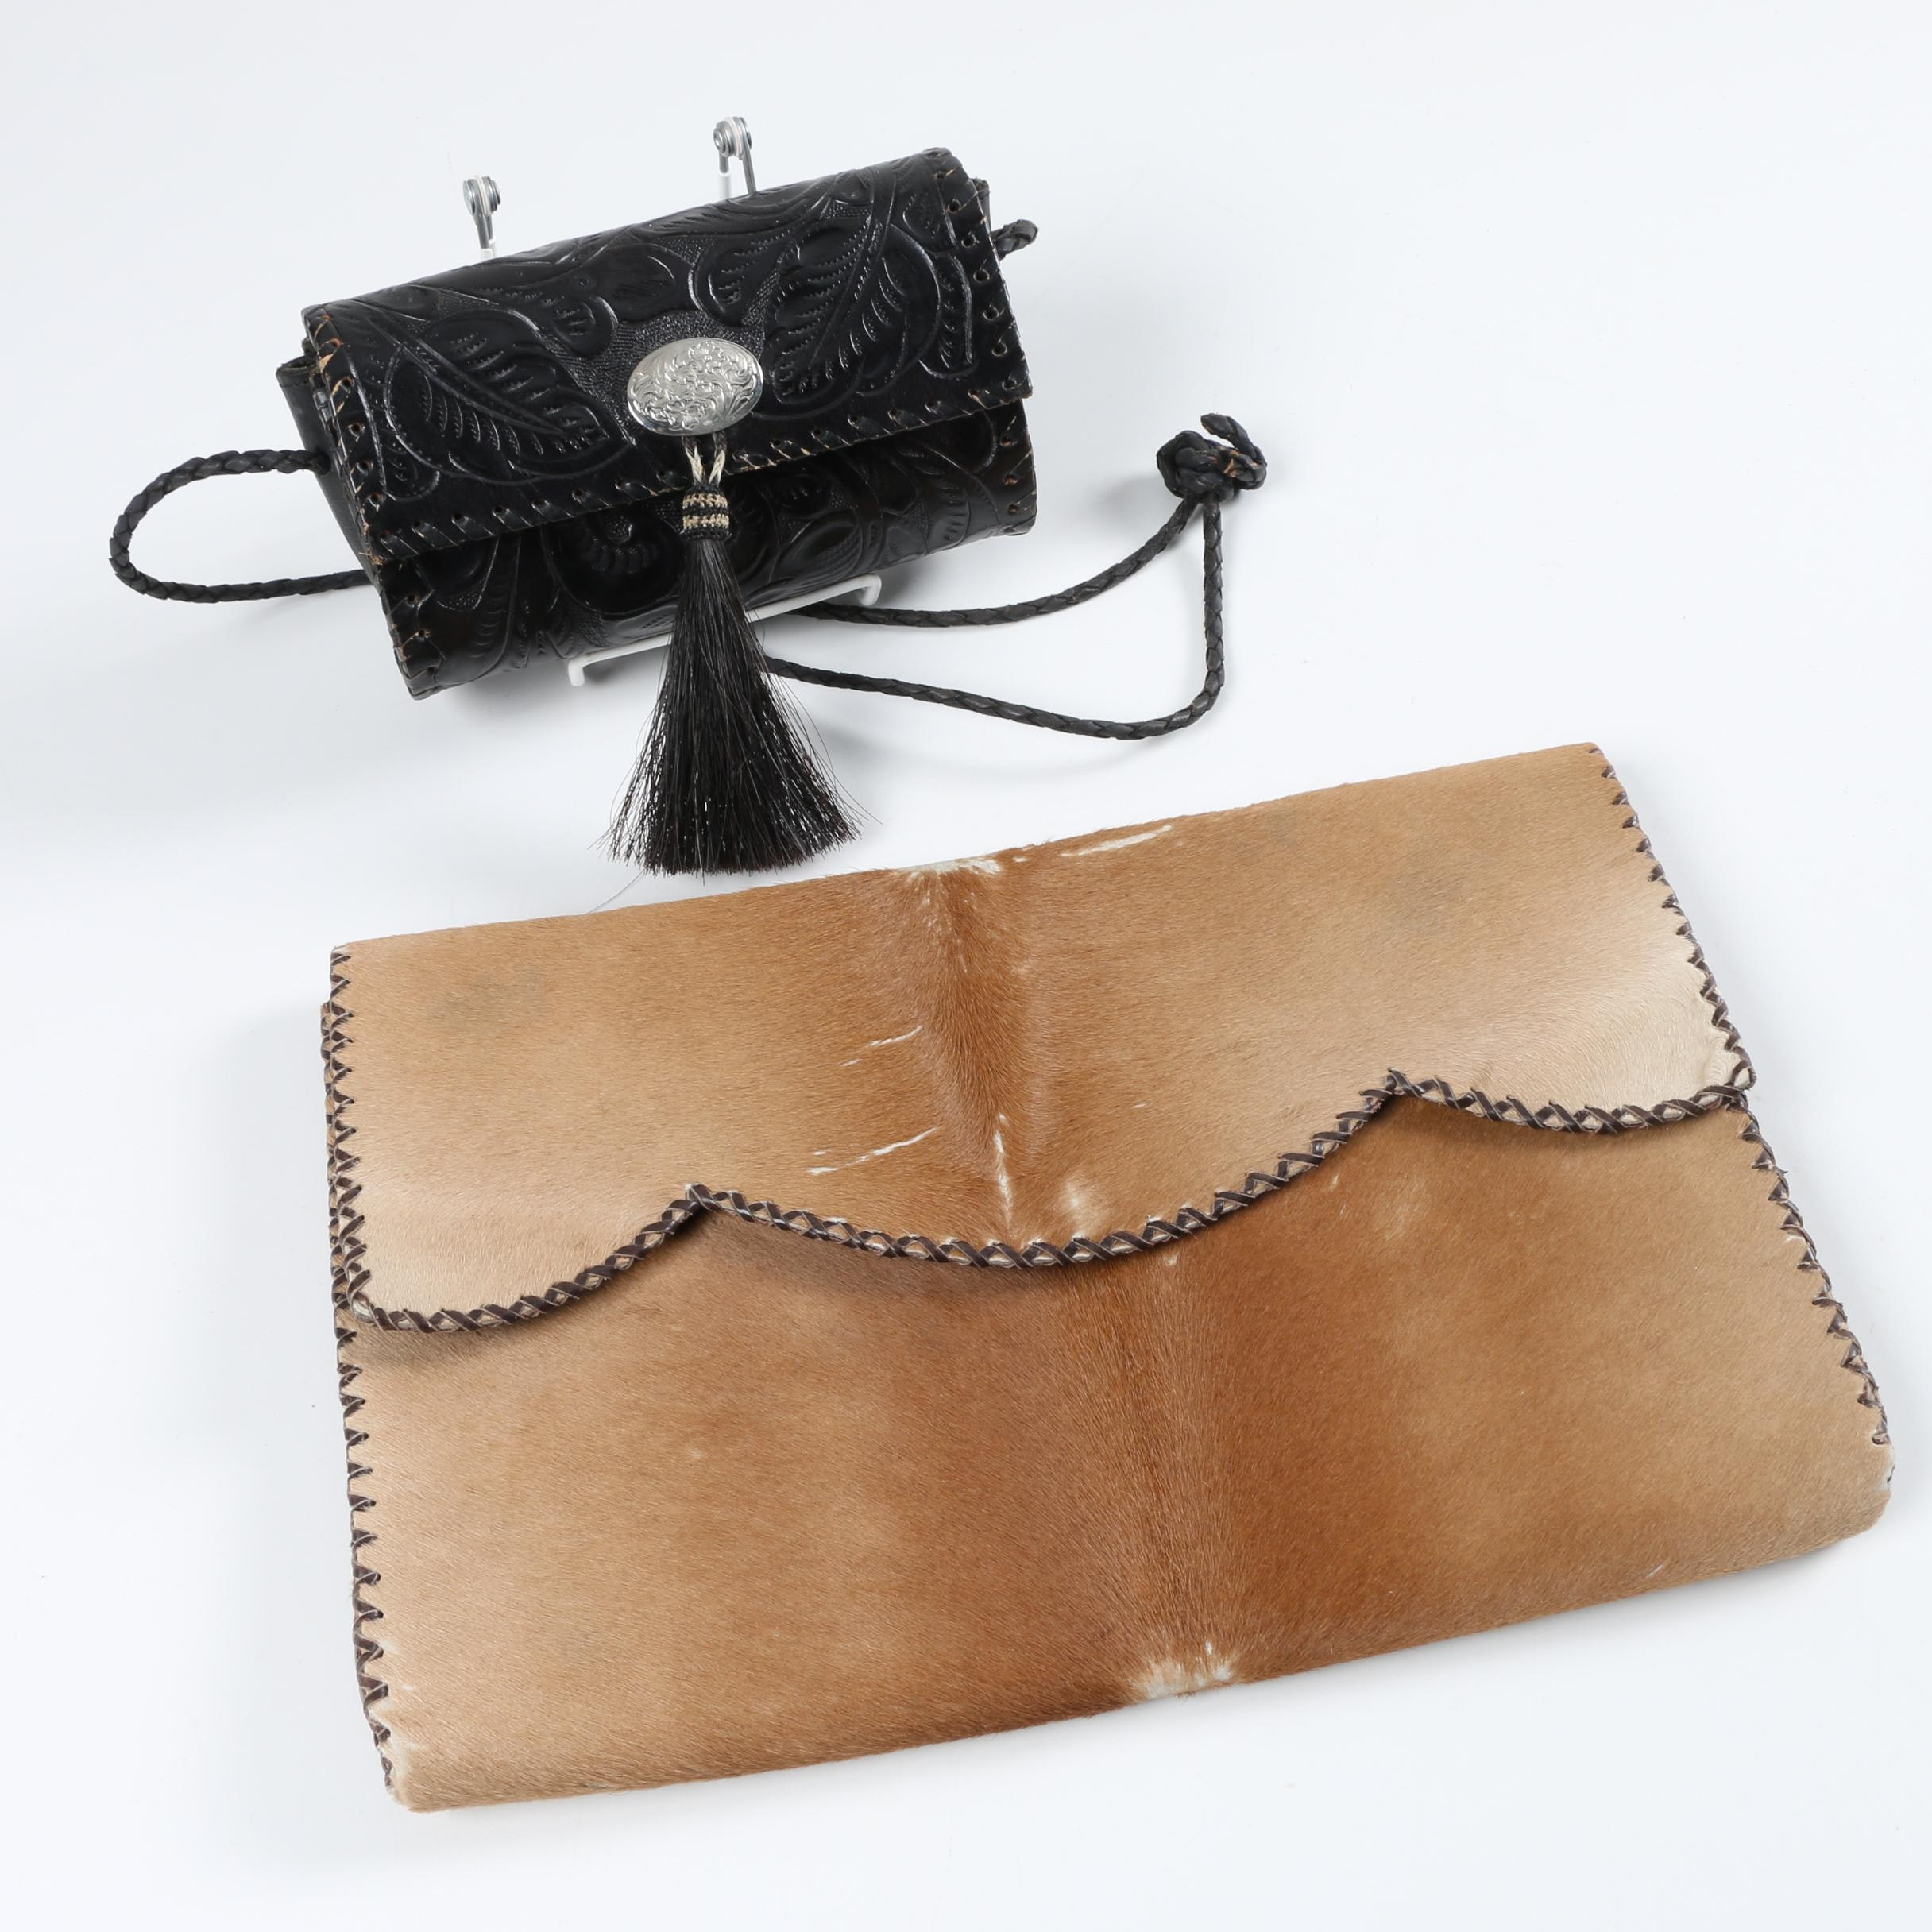 Vintage Pony Hair Clutch and Tooled Leather Horse Hair Crossbody Bag